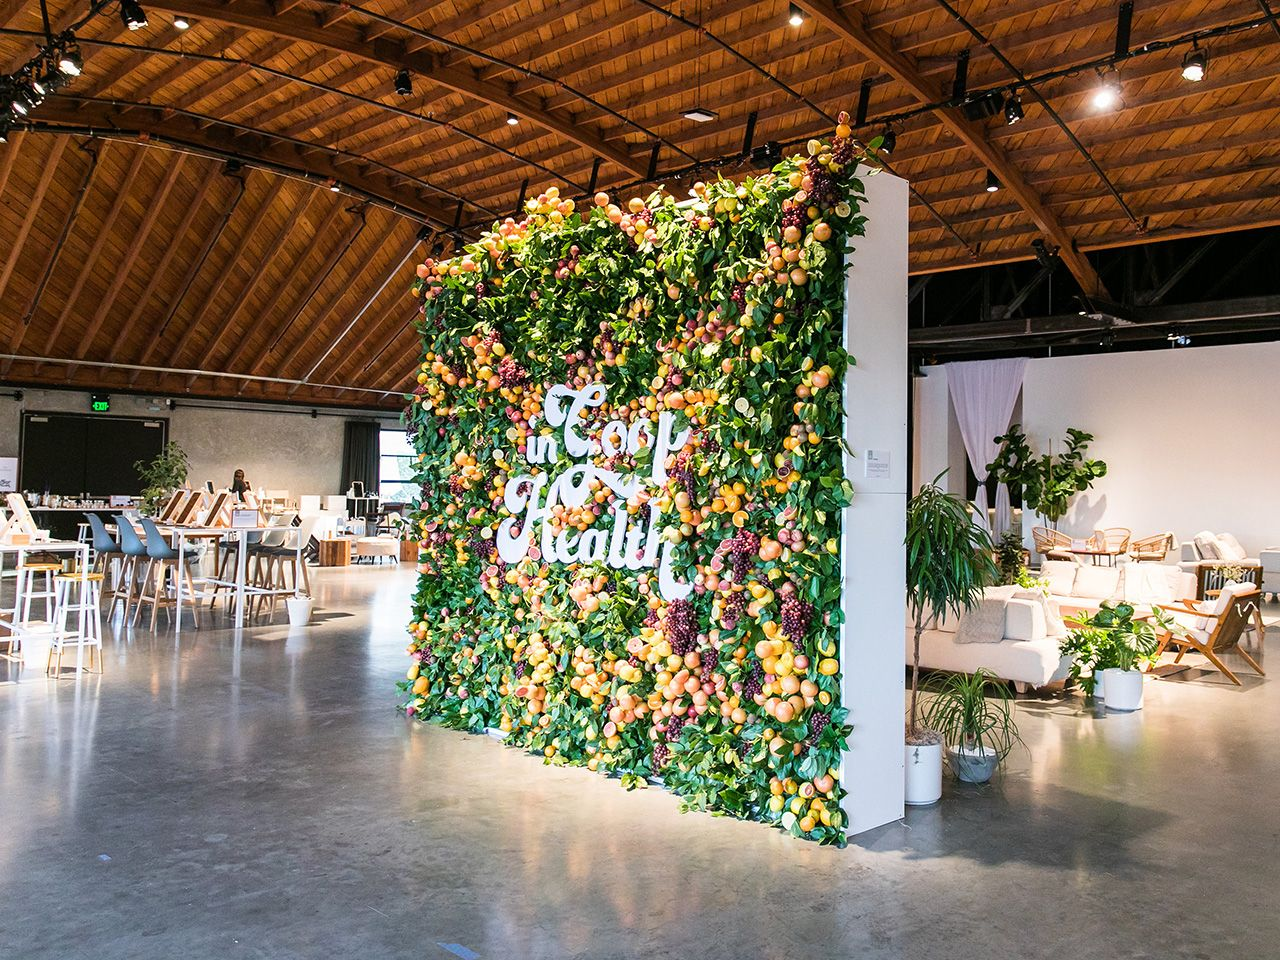 From brand activations to weddings, we've been seeing some beautiful live walls that are a beautiful backdrop for conversations and photos at events.   Here are a few of our favorite live walls for your event planning inspiration.